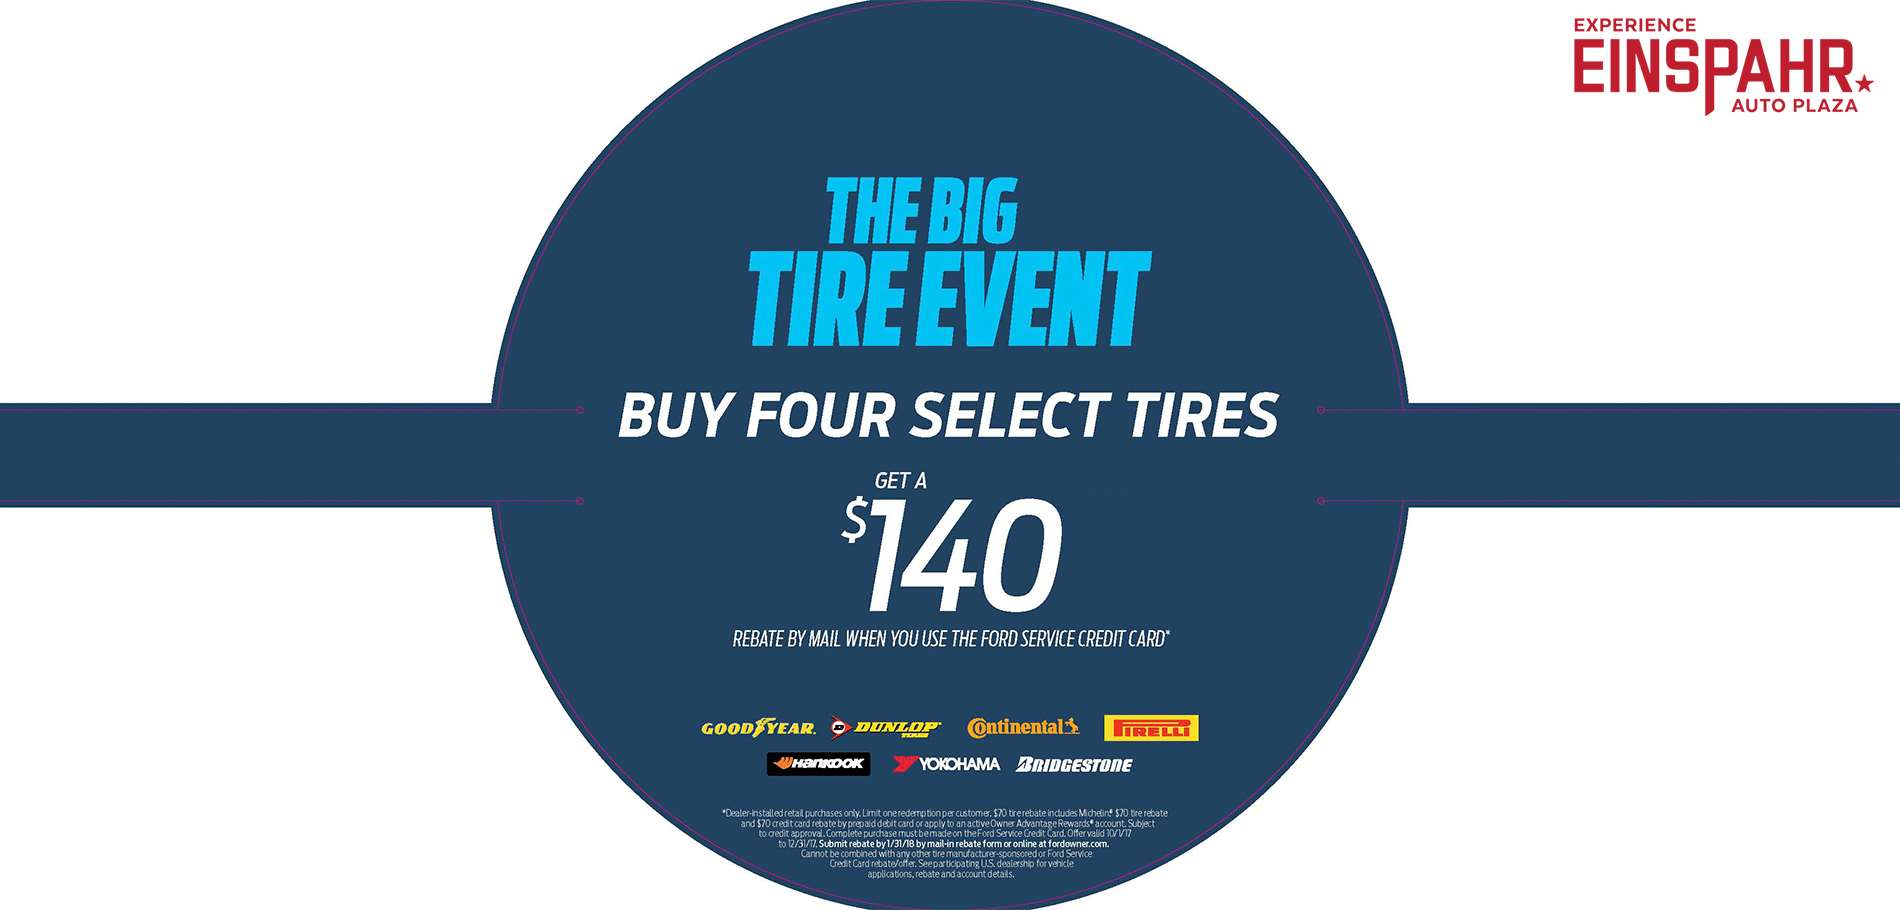 4th Qtr Tire Rebate